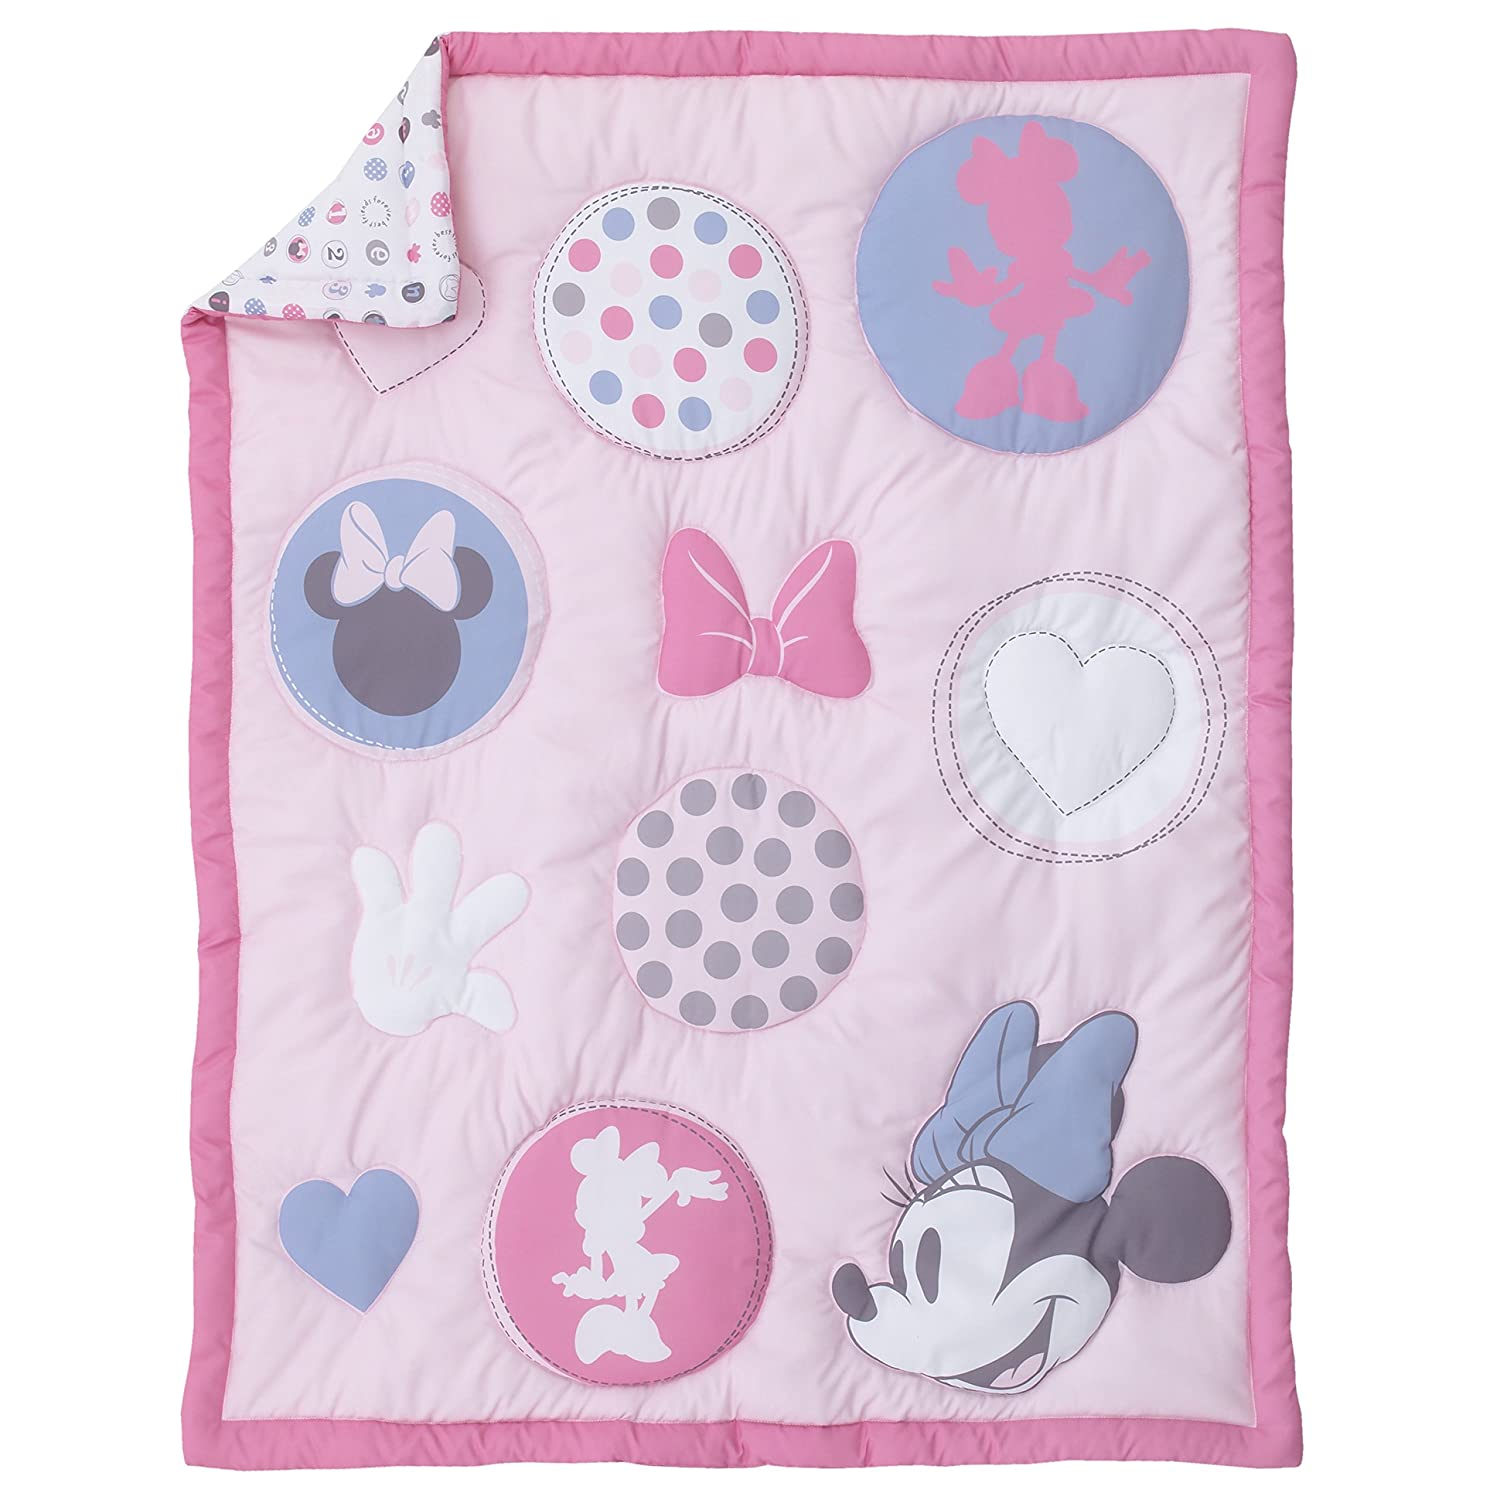 Pink Disney Minnie Mouse Pretty In Pink 3 Piece Nursery Crib Bedding Set Rose Grey